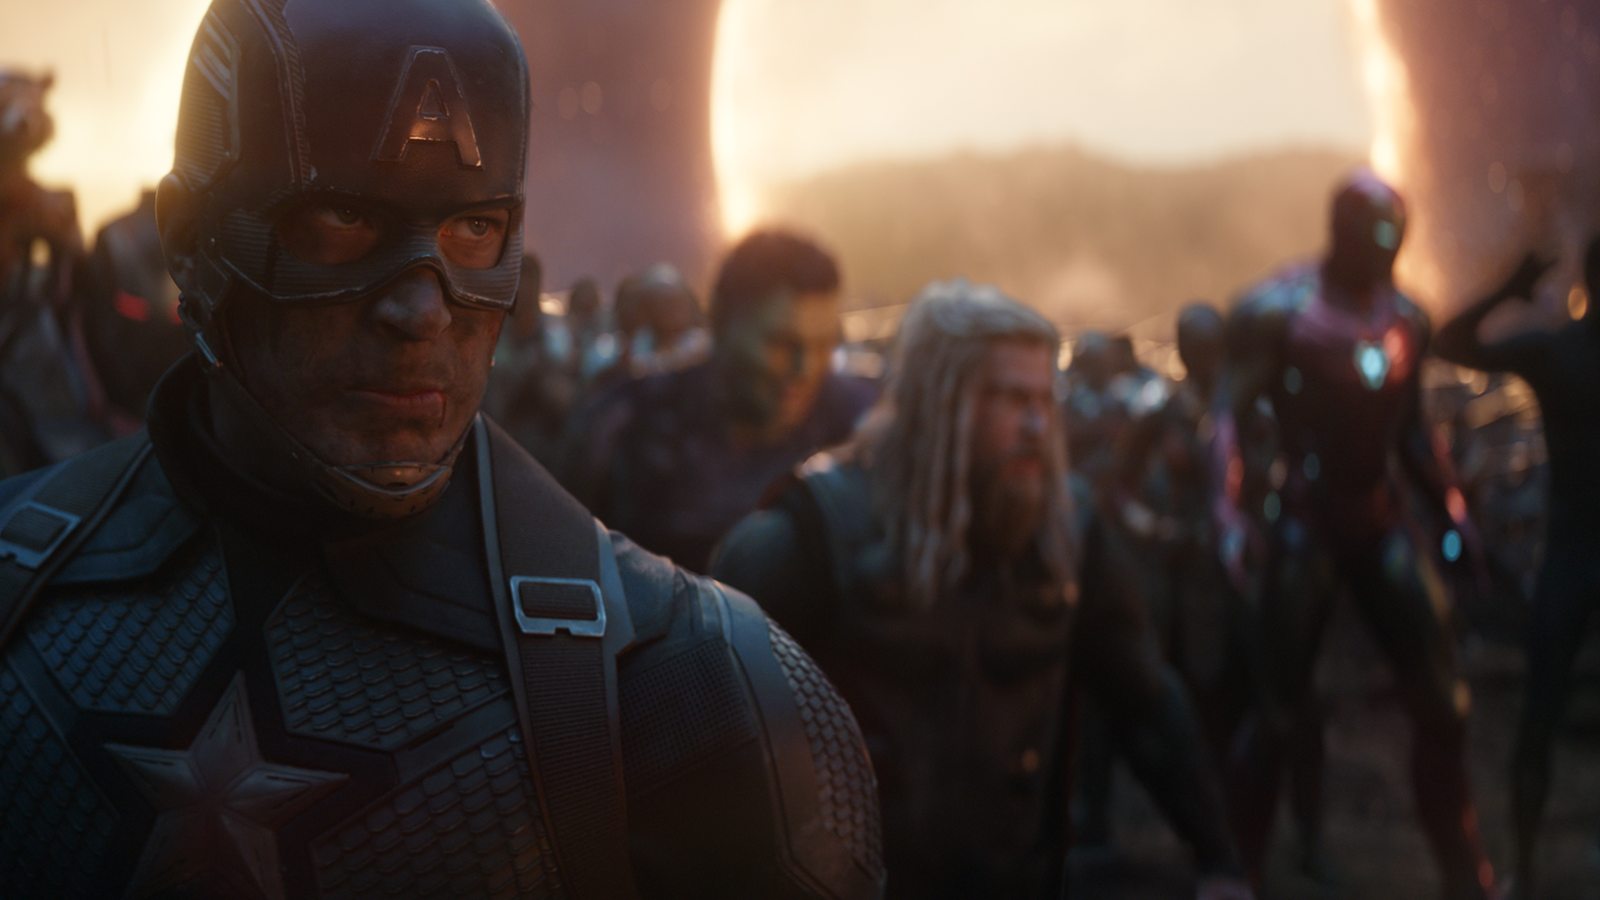 Avengers: Endgame Is Returning to Theaters Real Soon, and With New Footage